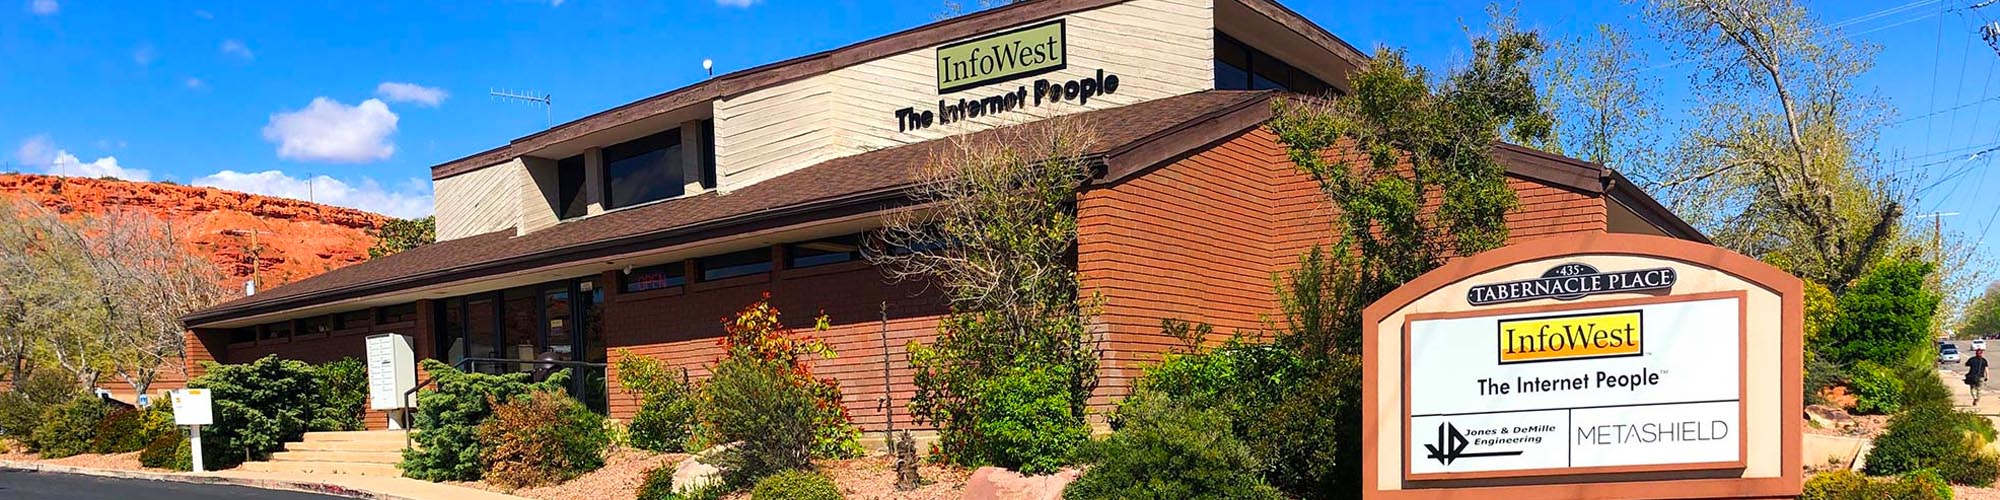 InfoWest Corporate Headquarters